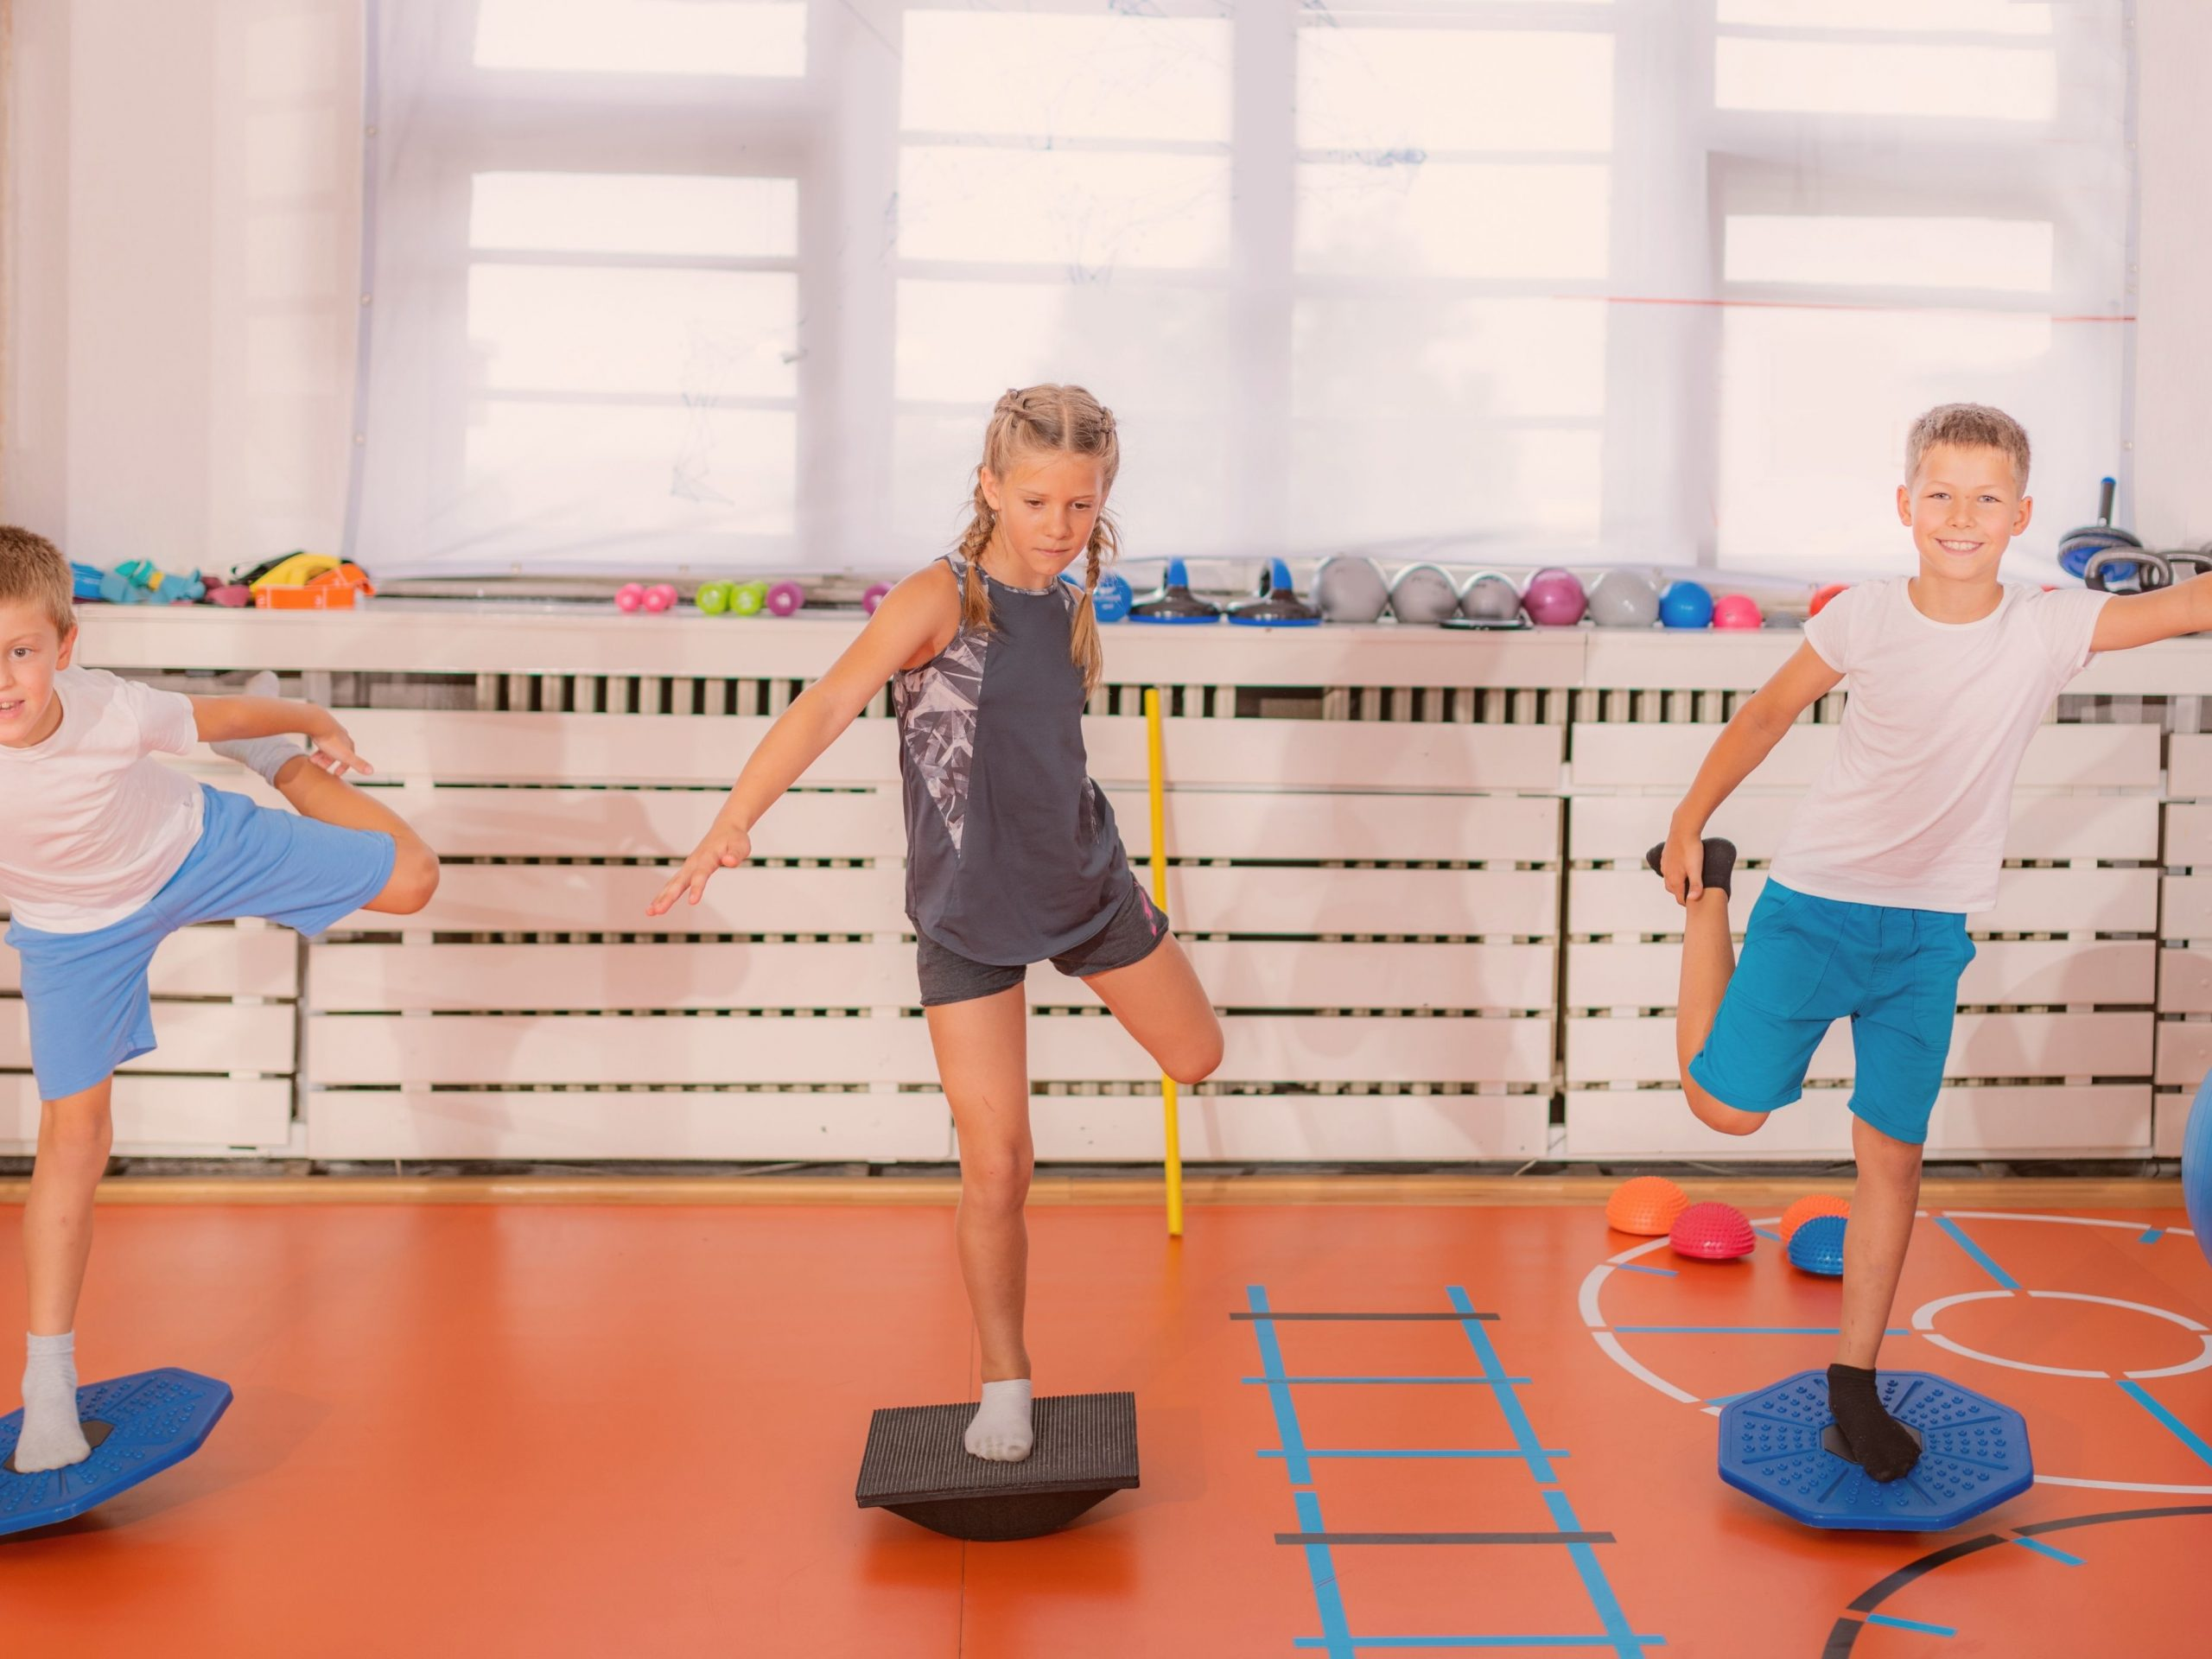 Improving Coordination – A part of fitness that is overlooked